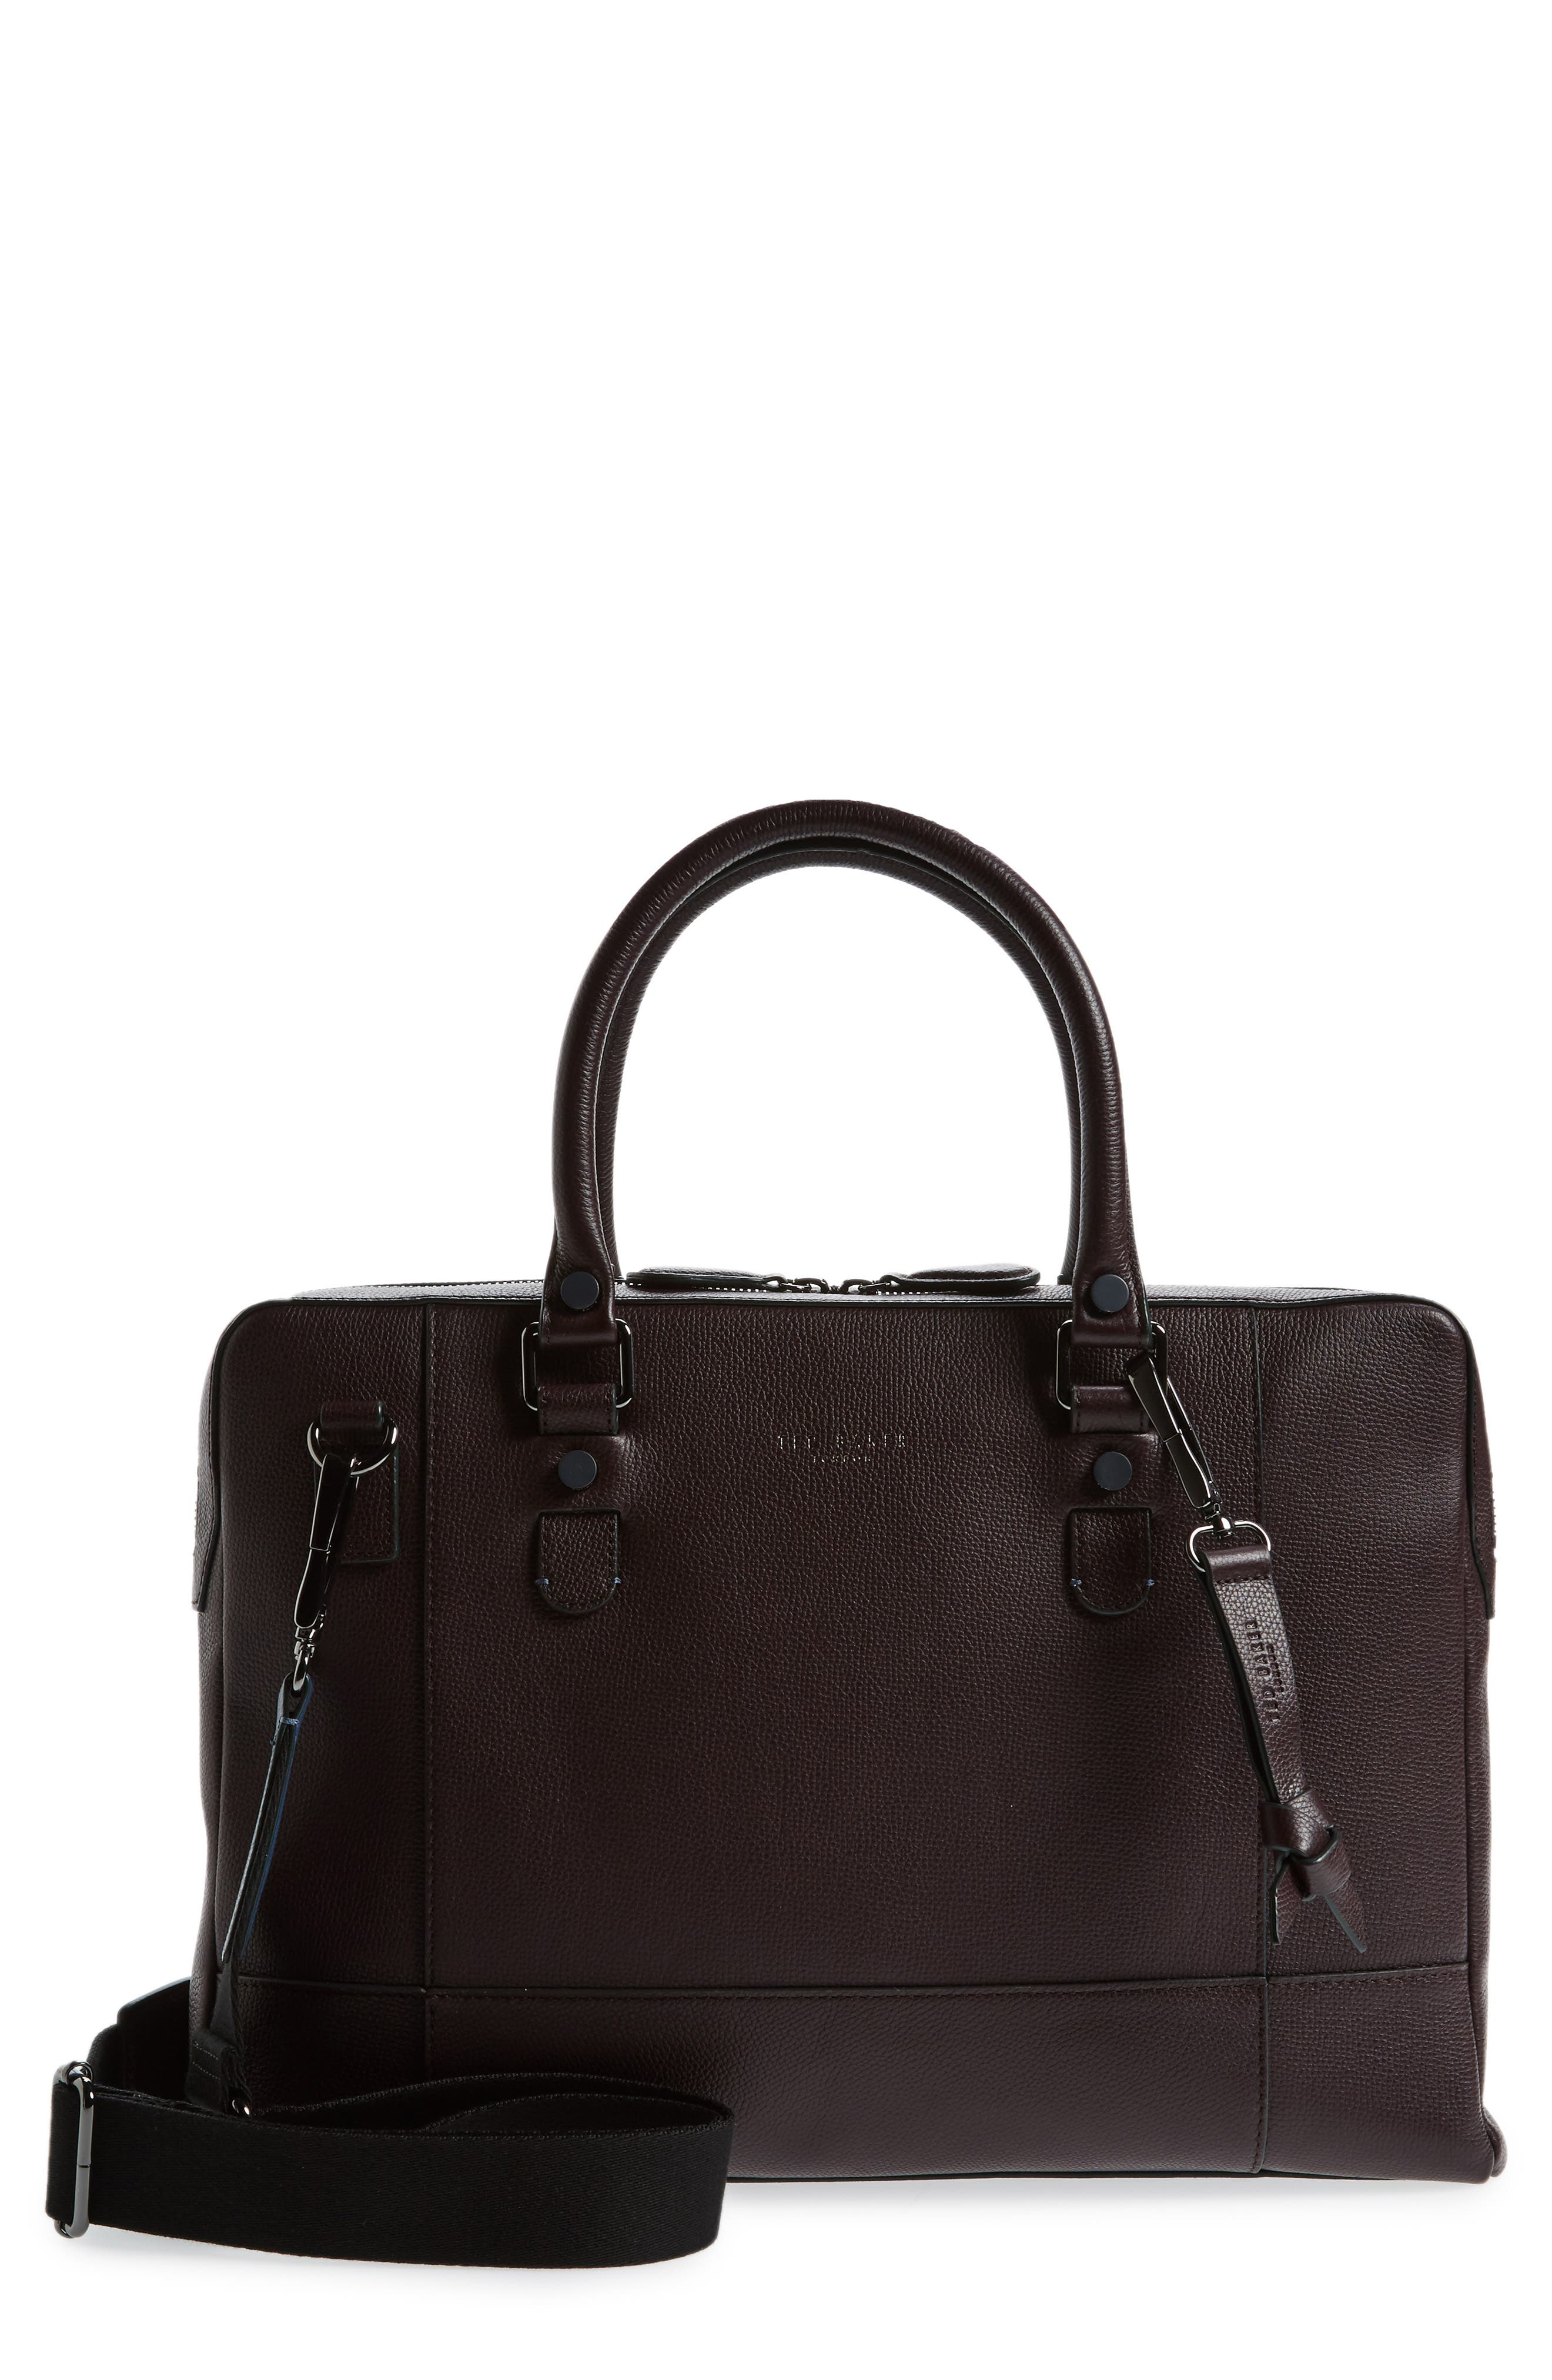 Jager Leather Briefcase,                             Main thumbnail 1, color,                             501